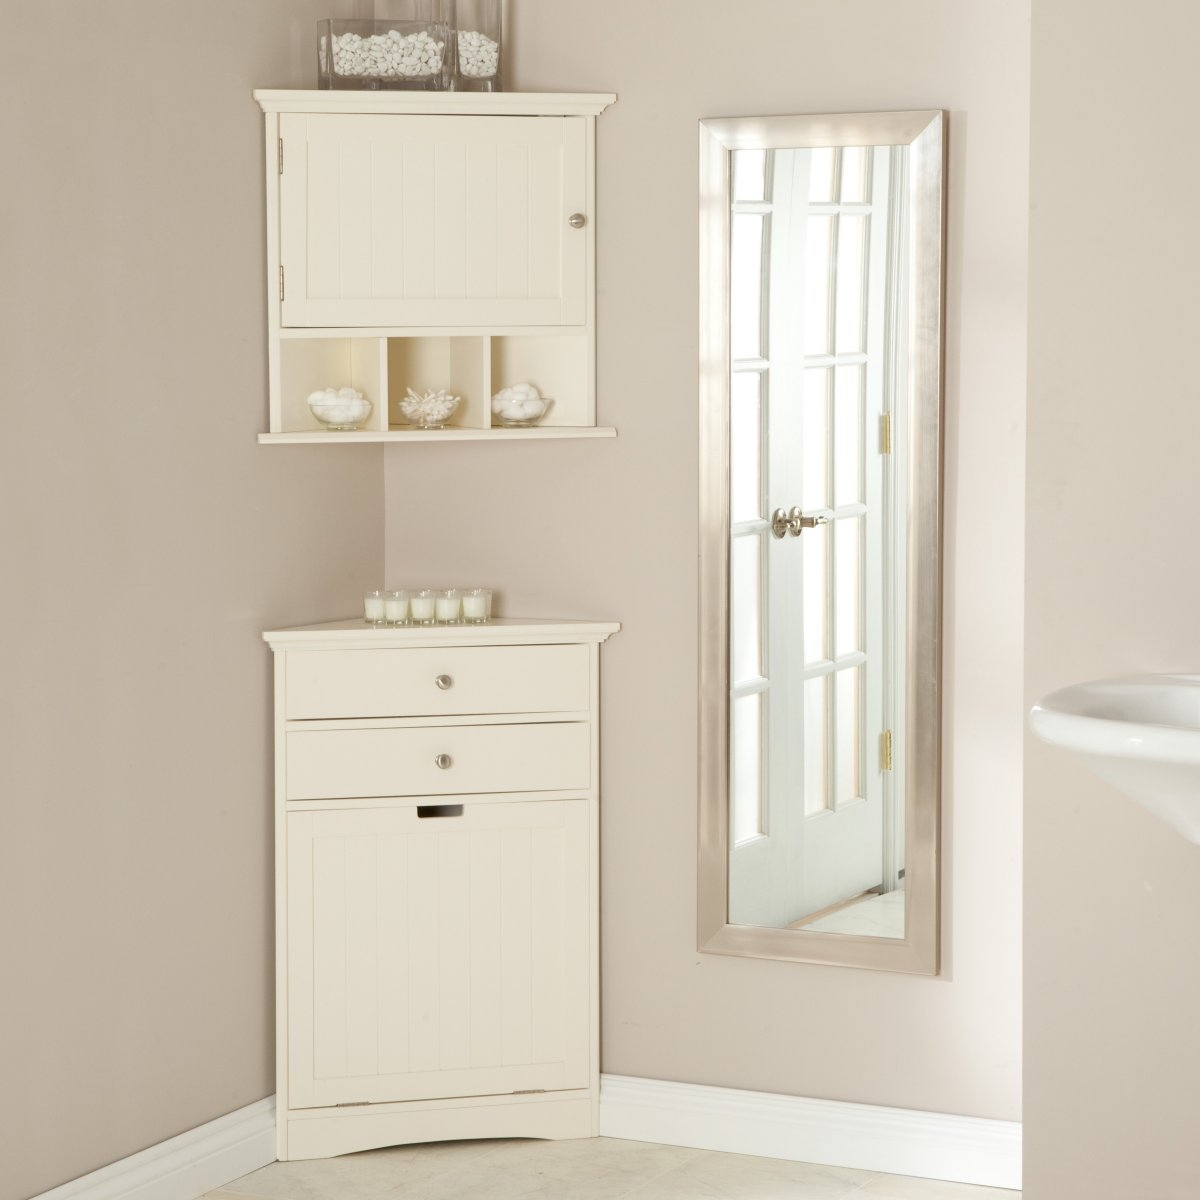 Permalink to White Corner Wall Cabinet Bathroom